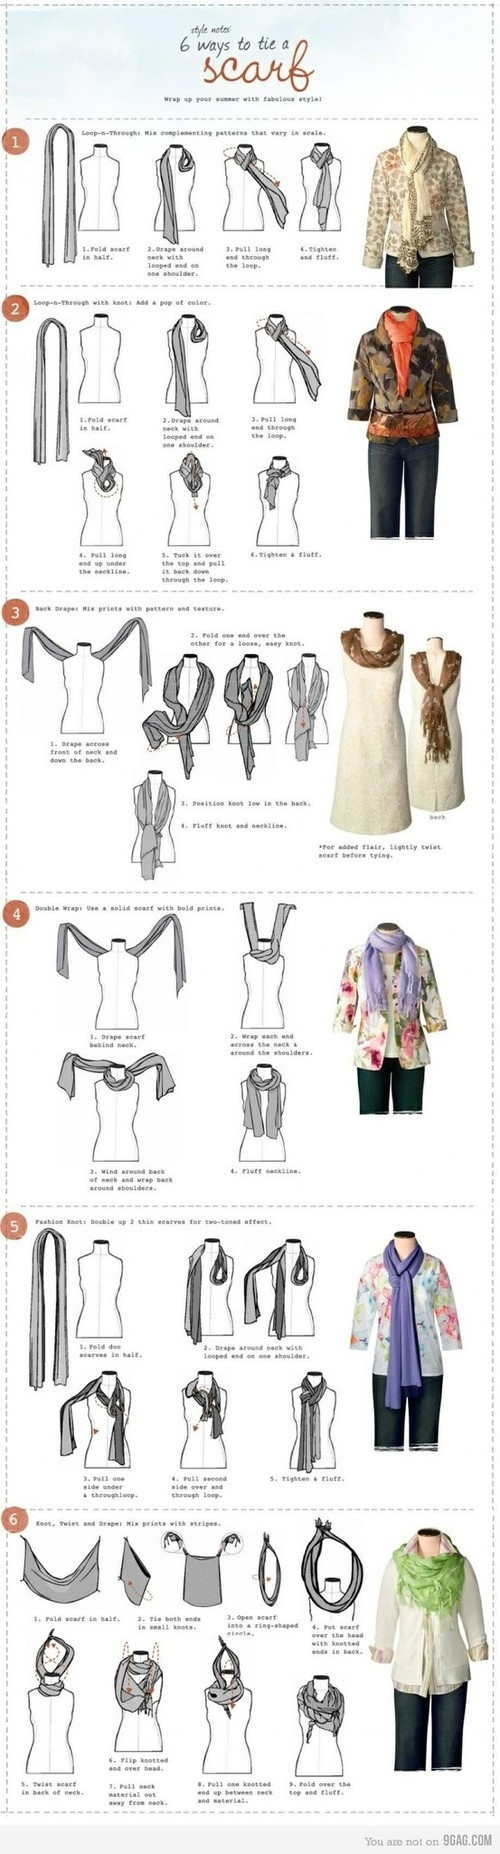 Scarf know-how   Larger images here: http://pleasantriesandpitbulls.com/2011/09/01/6-ways-to-tie-a-scarf/